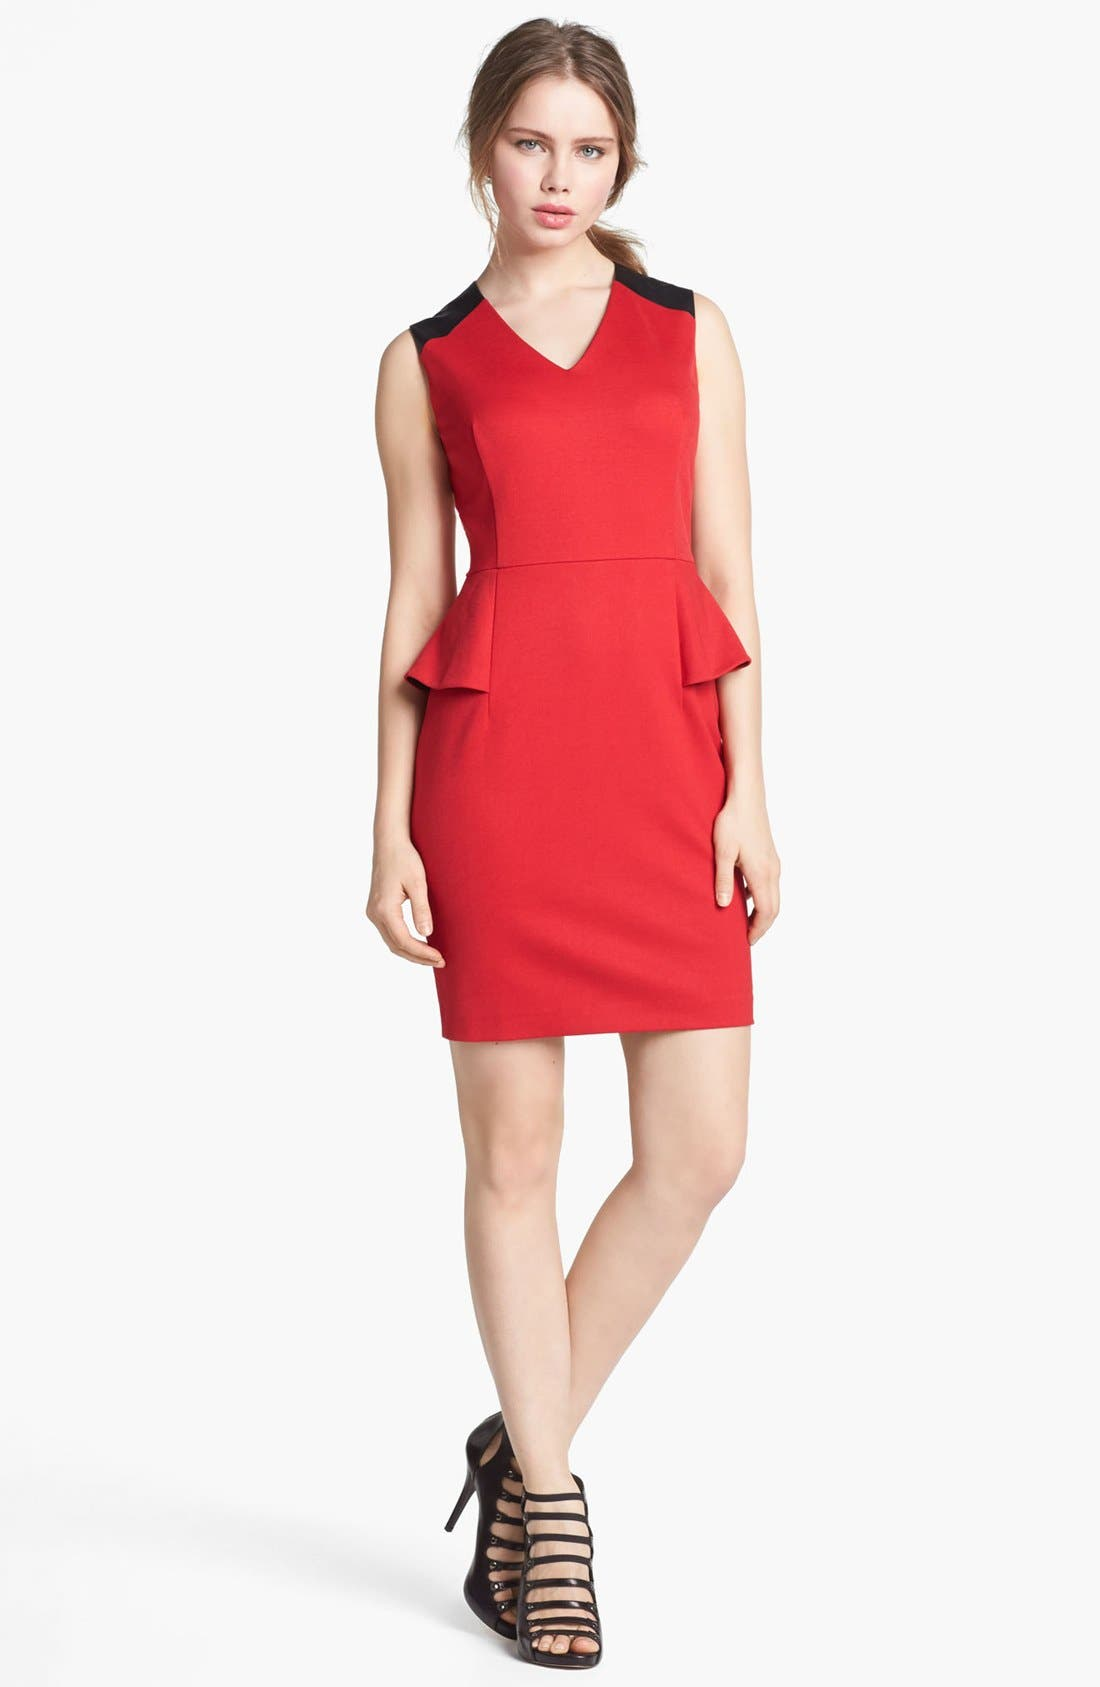 Alternate Image 1 Selected - Vince Camuto Faux Leather Shoulder Detail Peplum Dress